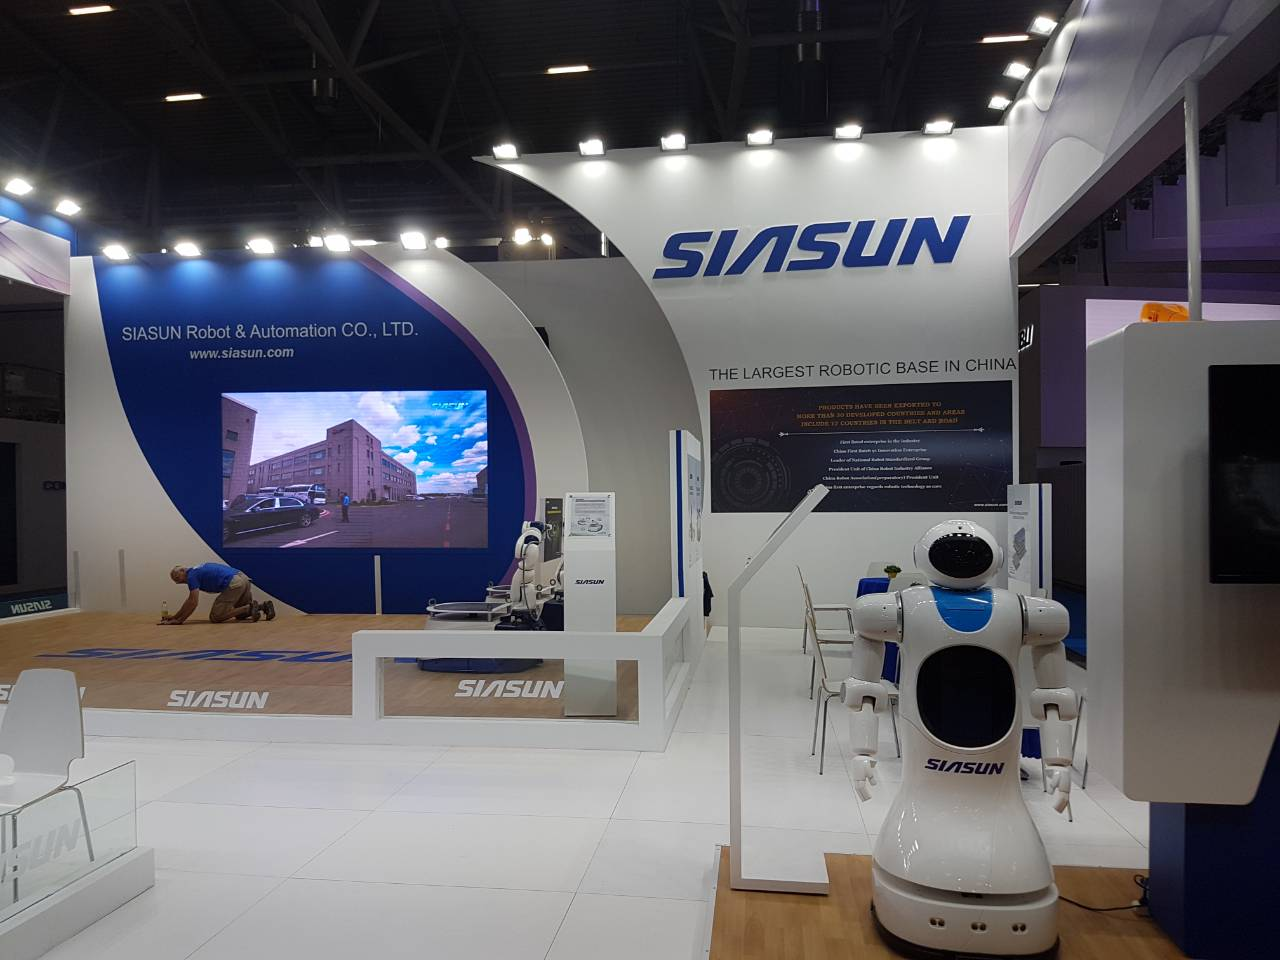 SIASUN Robot & Automation Co Ltd